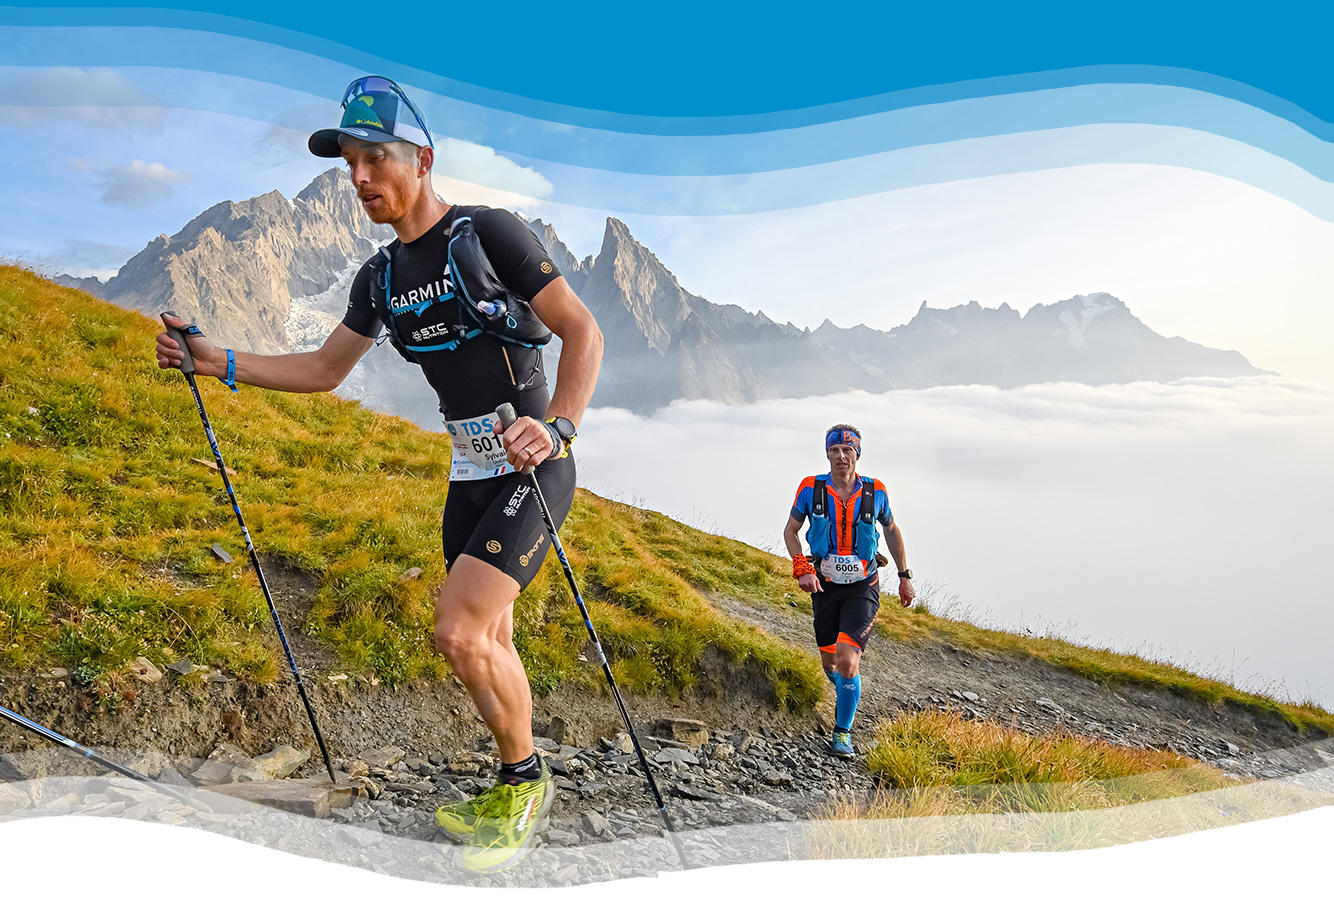 Video still of two UTMB participants on a mountain trail.